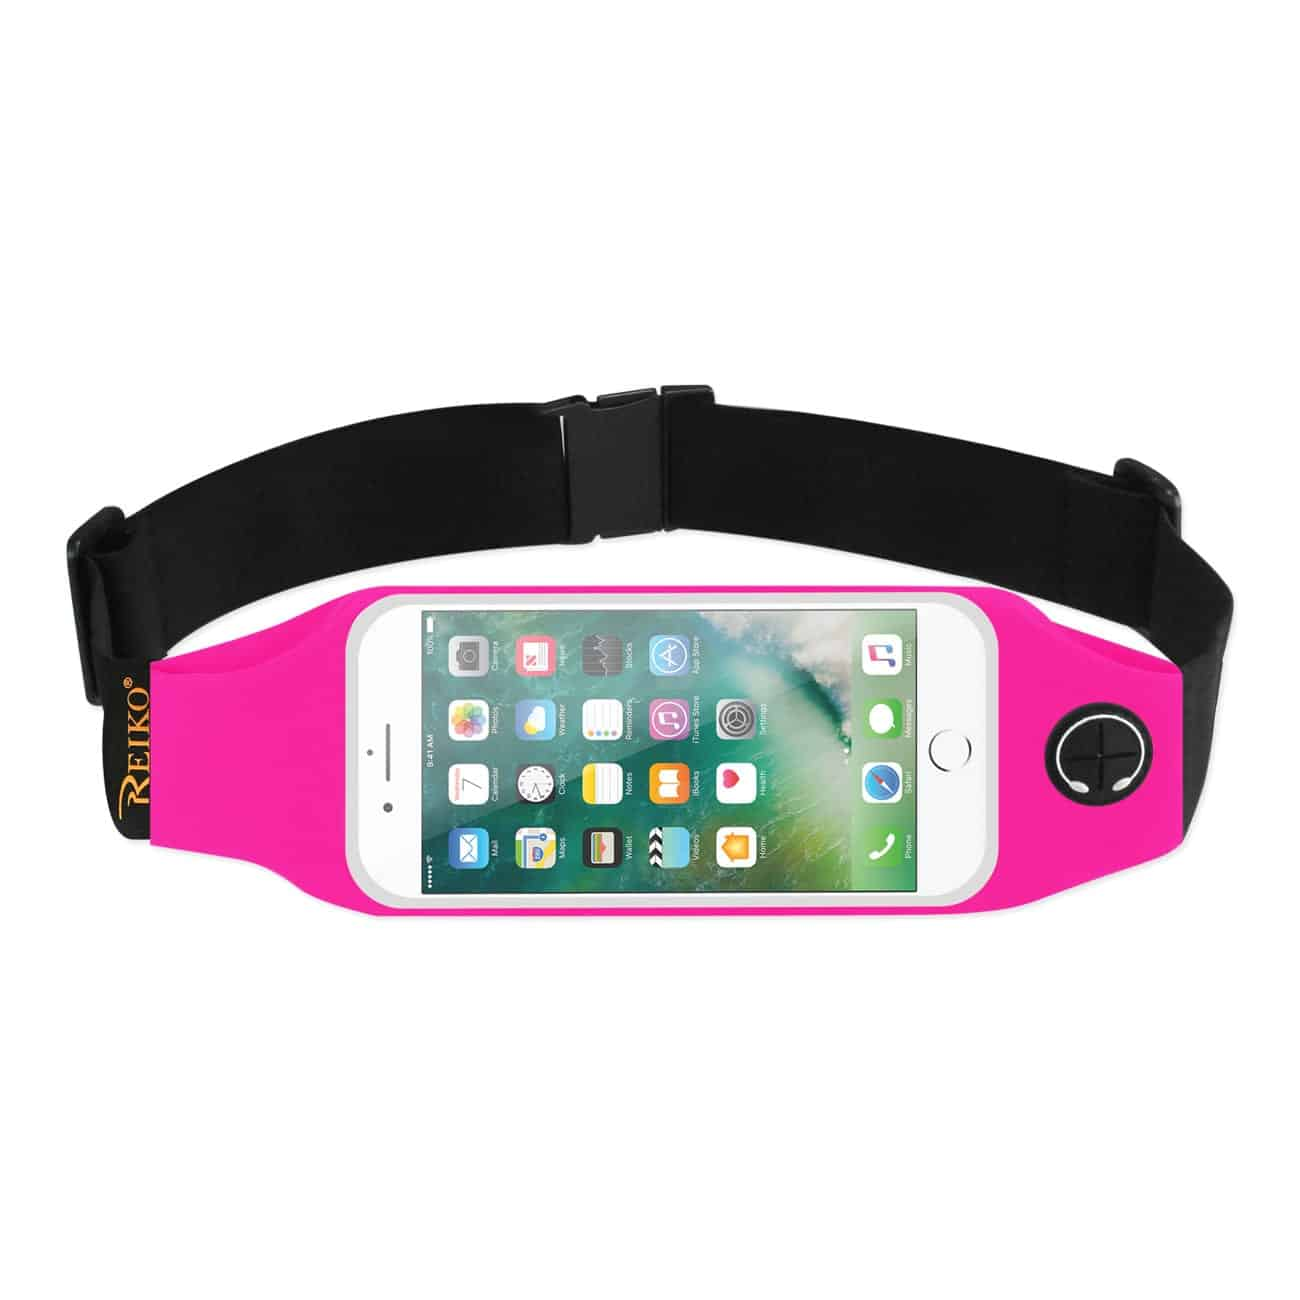 RUNNING SPORT BELT FOR IPHONE 7 PLUS/ 6S PLUS OR 5.5 INCHES DEVICE WITH TWO POCKETS AND LED IN PINK (5.5x5.5 INCHES)